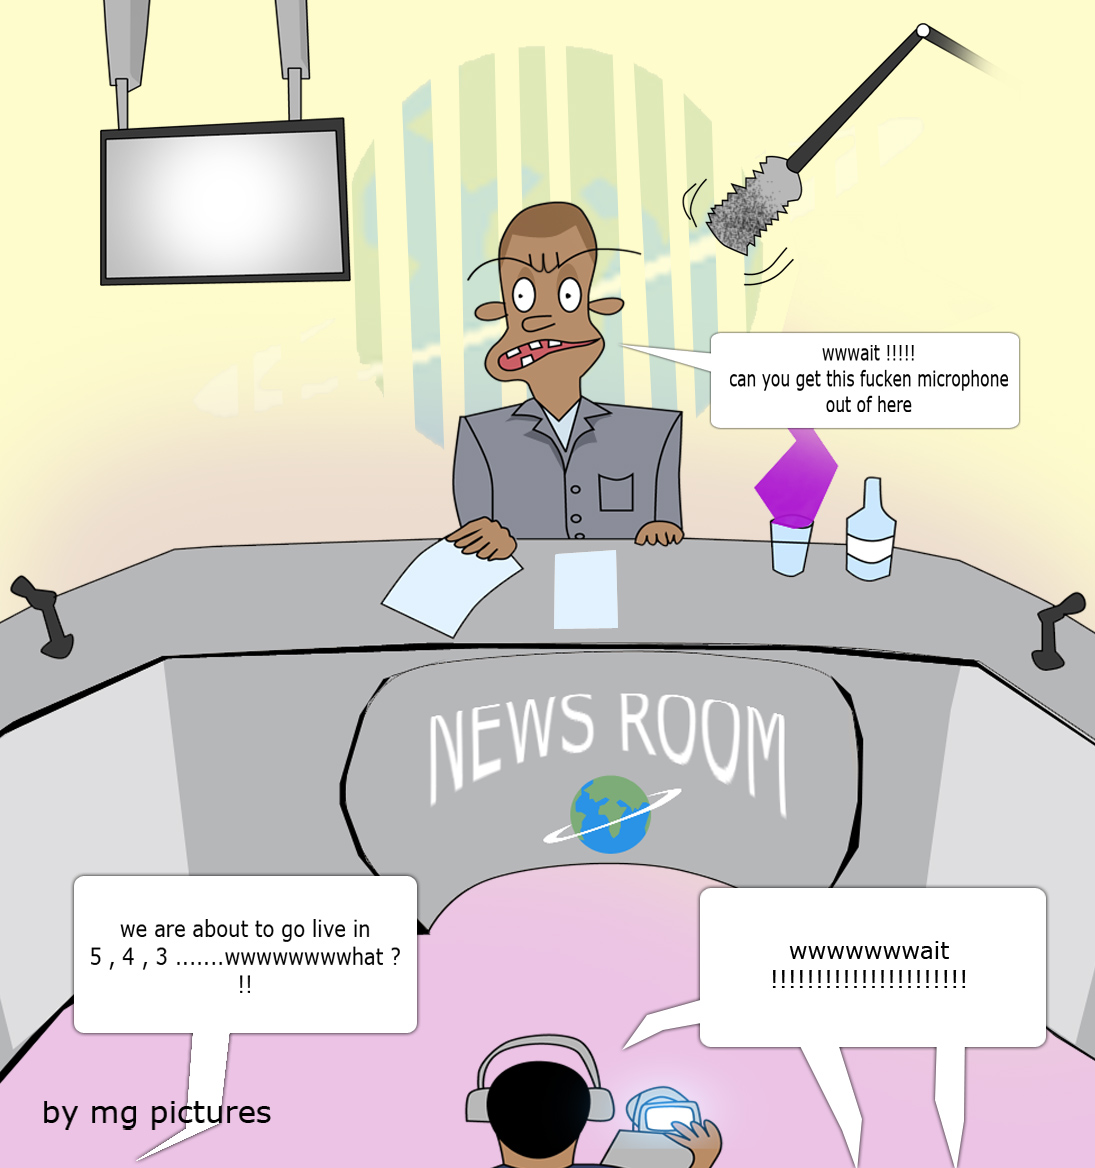 NEWS ROOM BEFORE LIVE BY MAC G CANDYS HOUSE